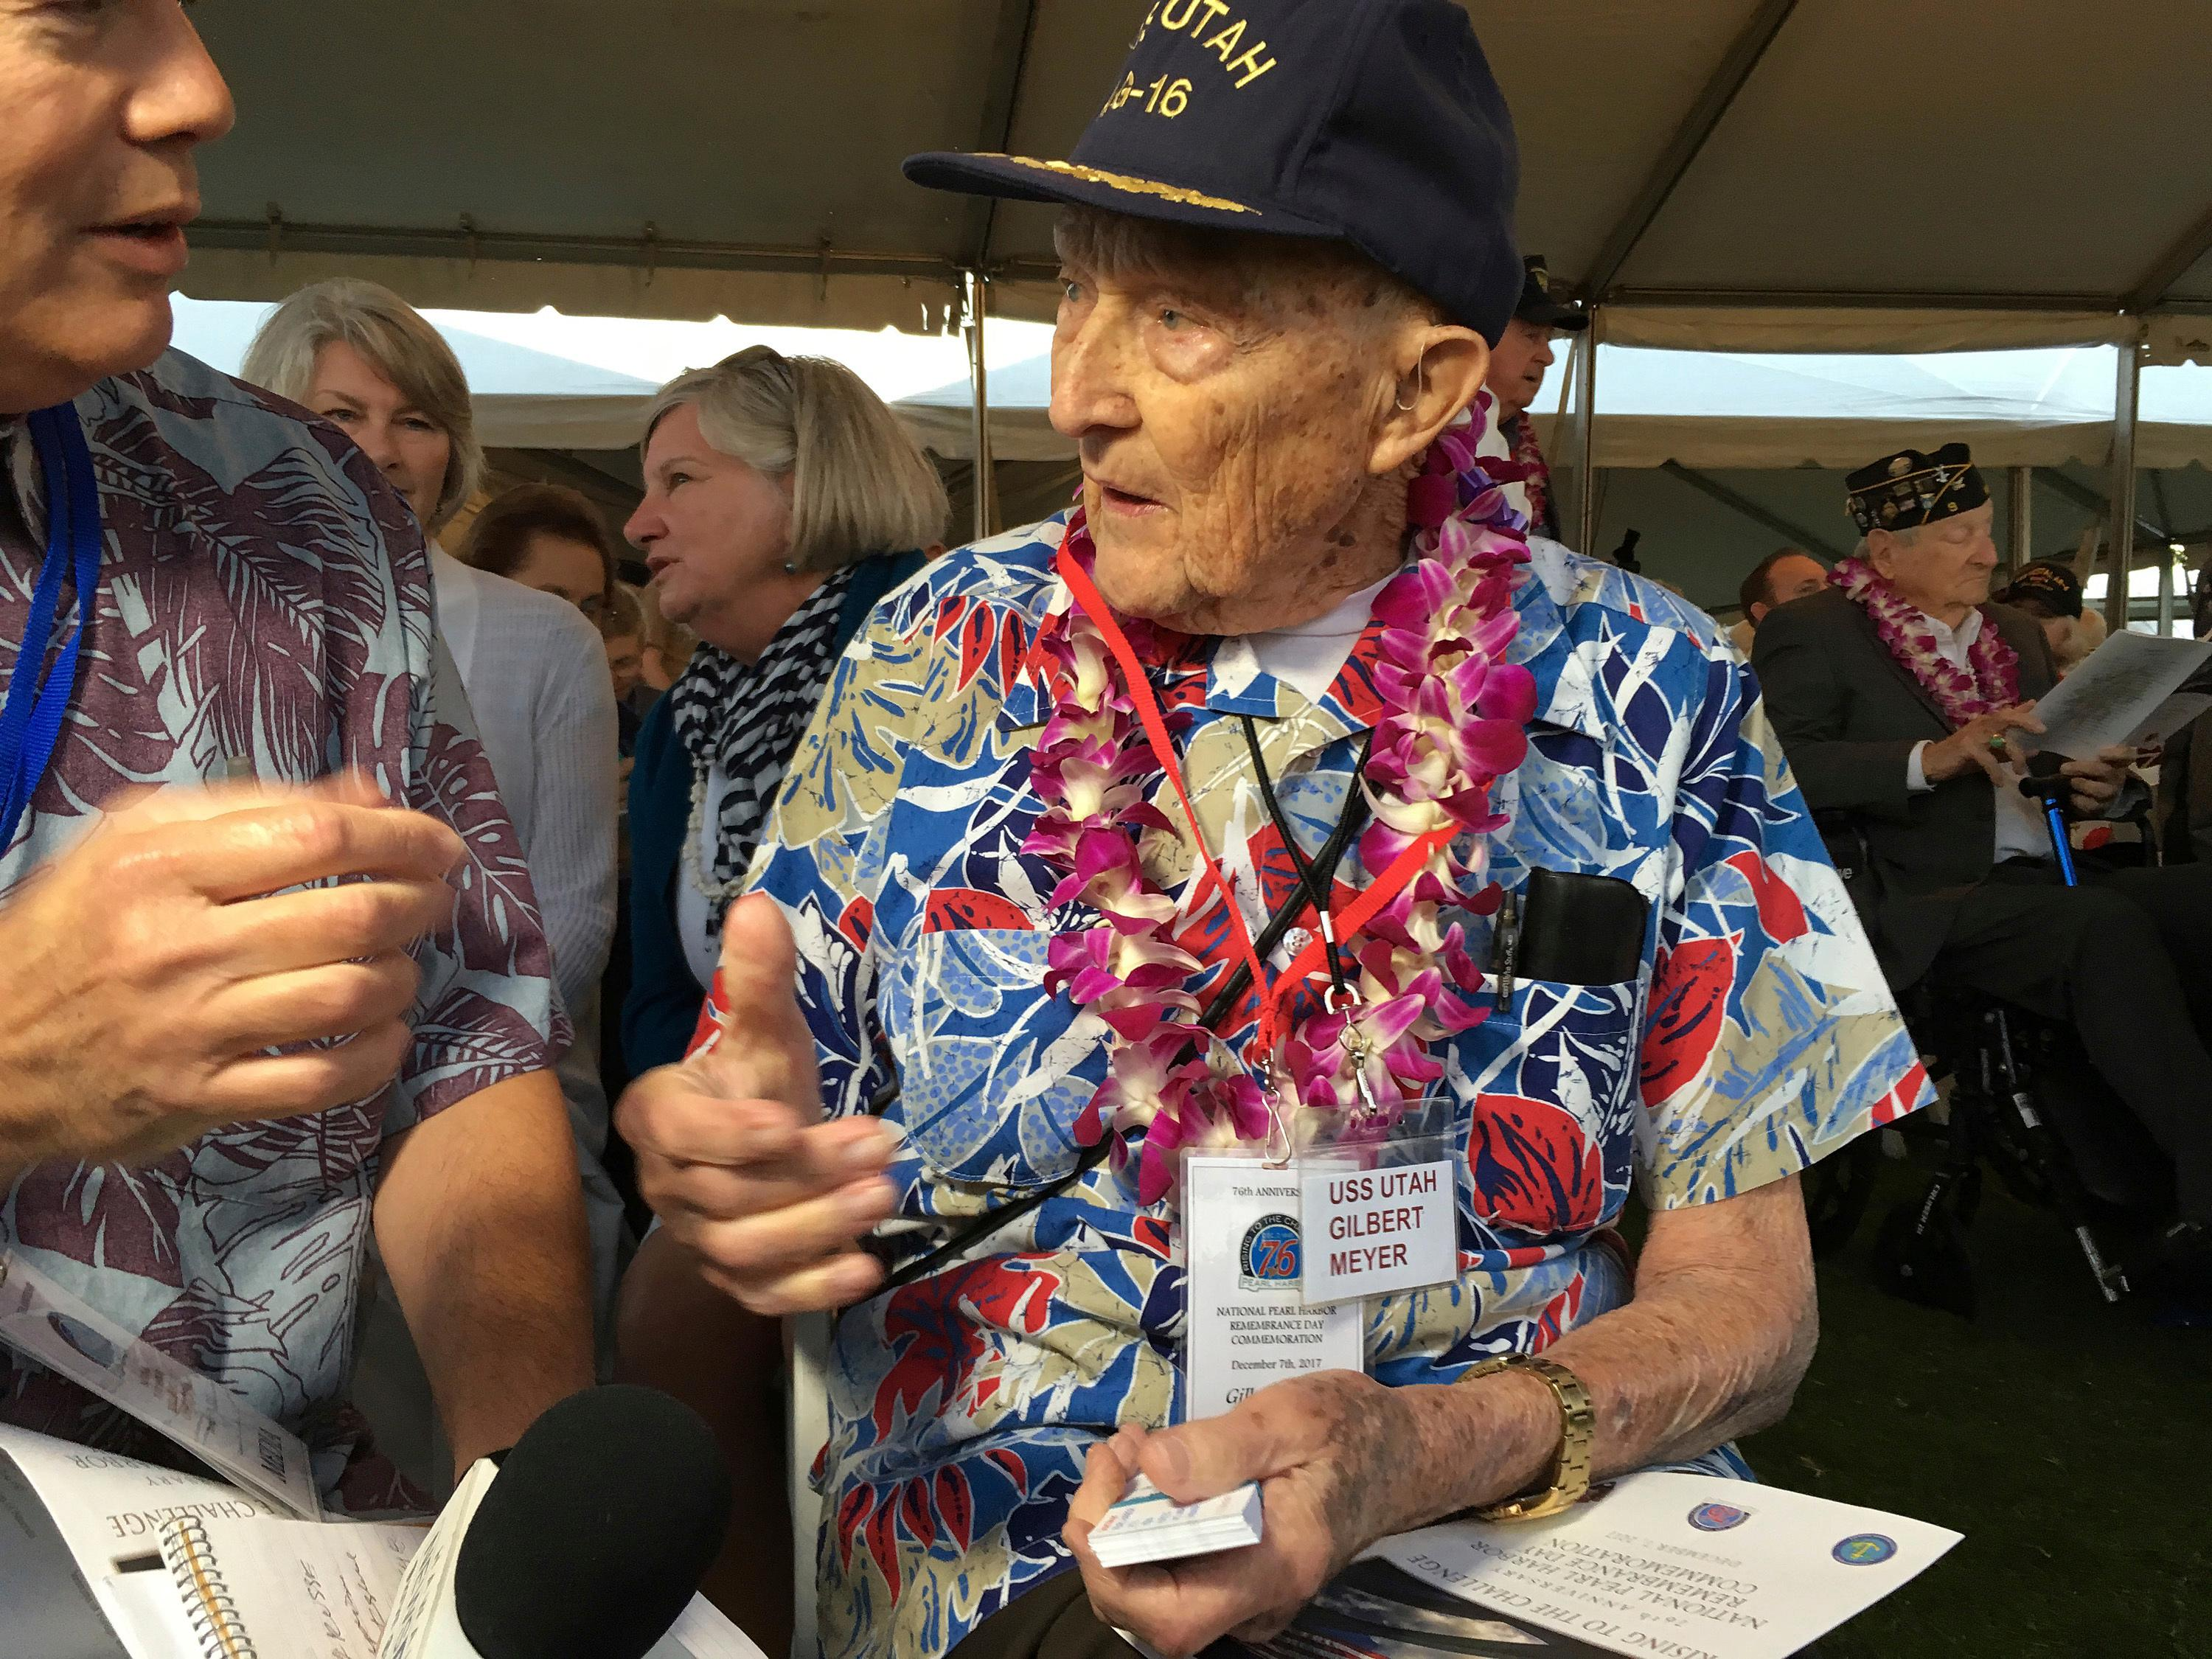 Pearl Harbor survivor Gilbert Meyer, 95, who lives near Lytle, Texas, speaks to a reporter before a remembrance ceremony at Pearl Harbor, Hi., on Thursday, Dec. 7, 2017. (AP Photo/Audrey McAvoy)